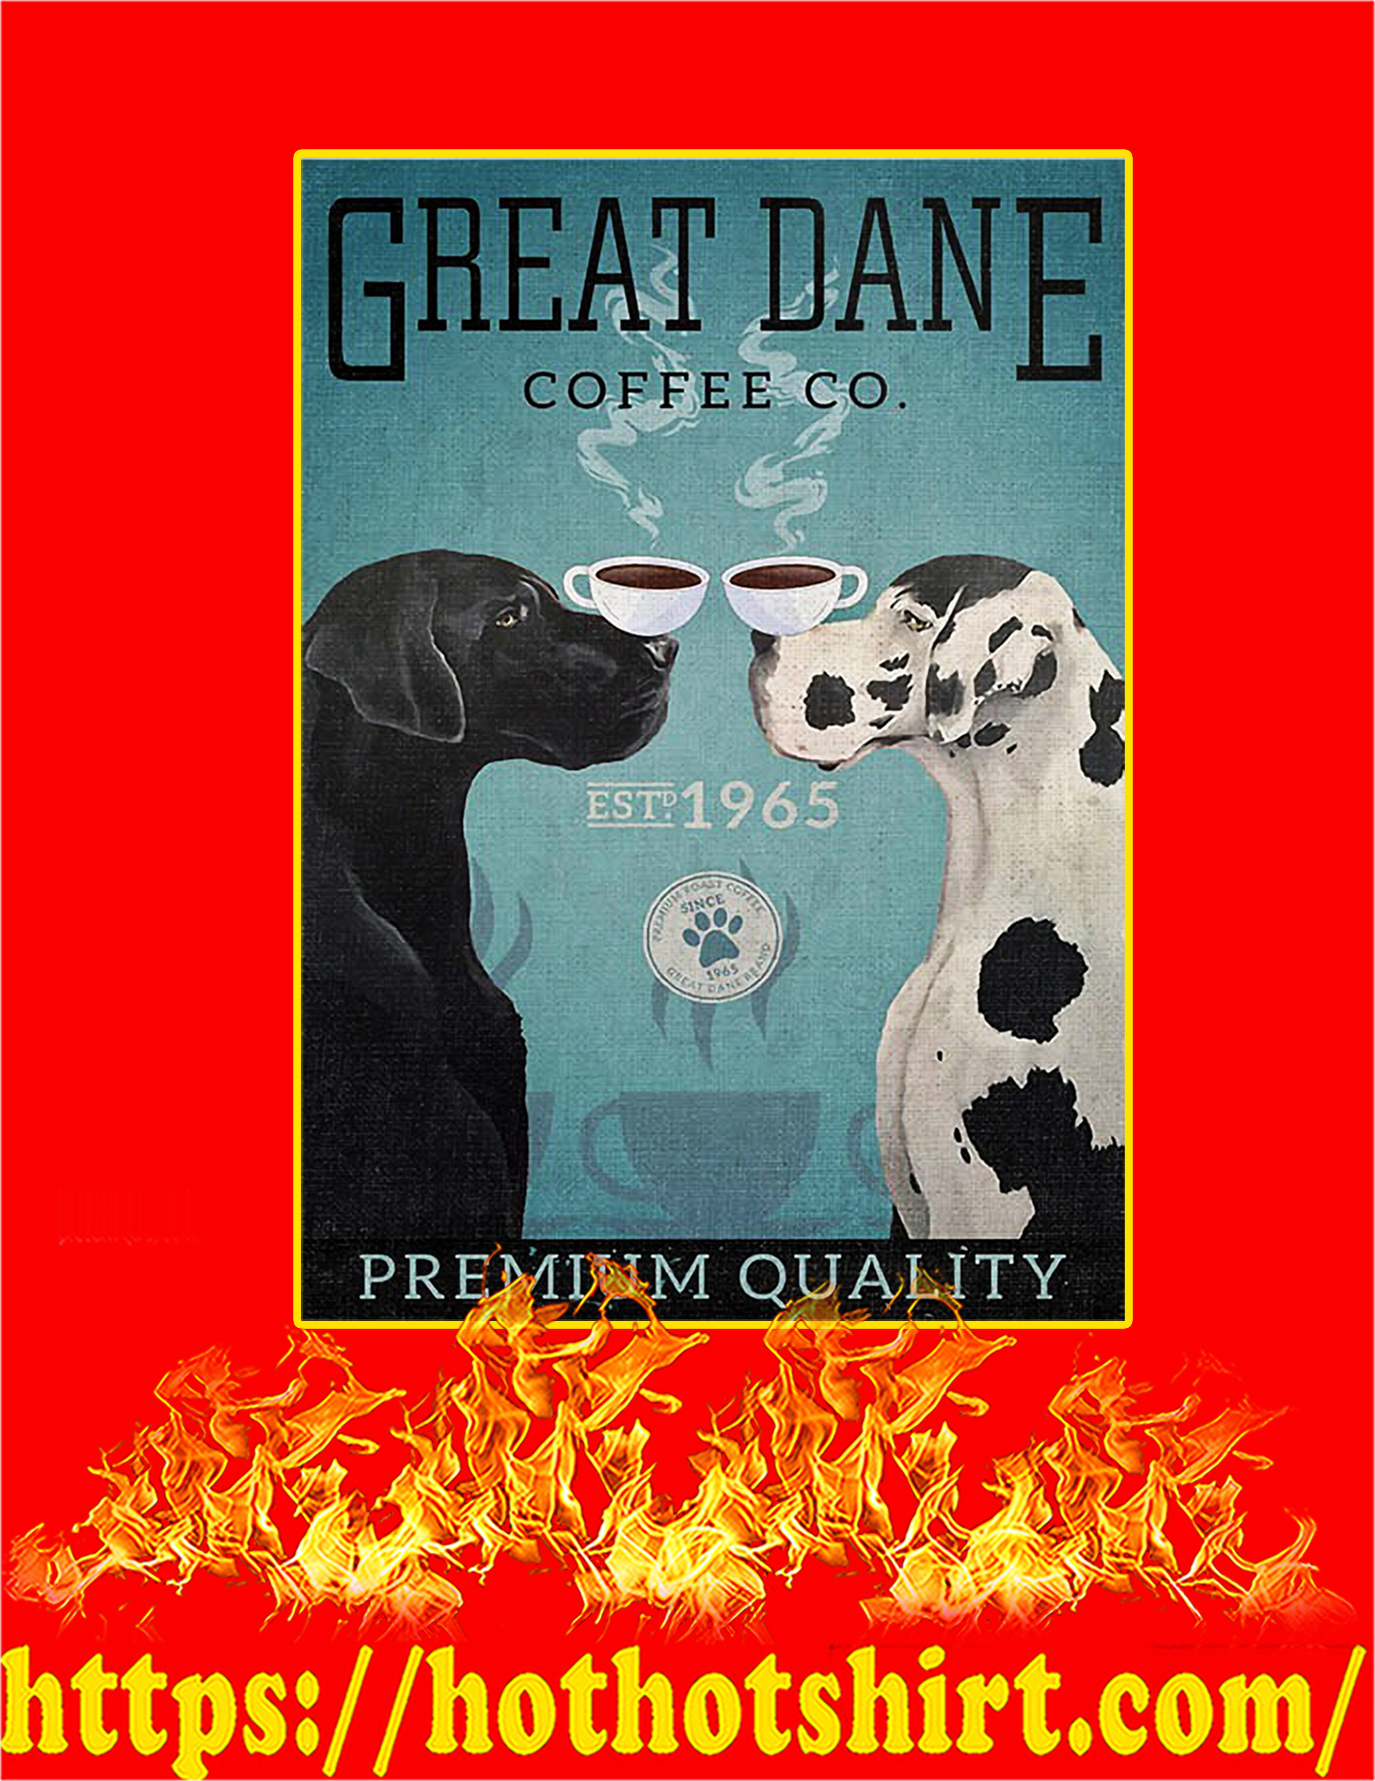 Great dane dog coffee company poster - A3